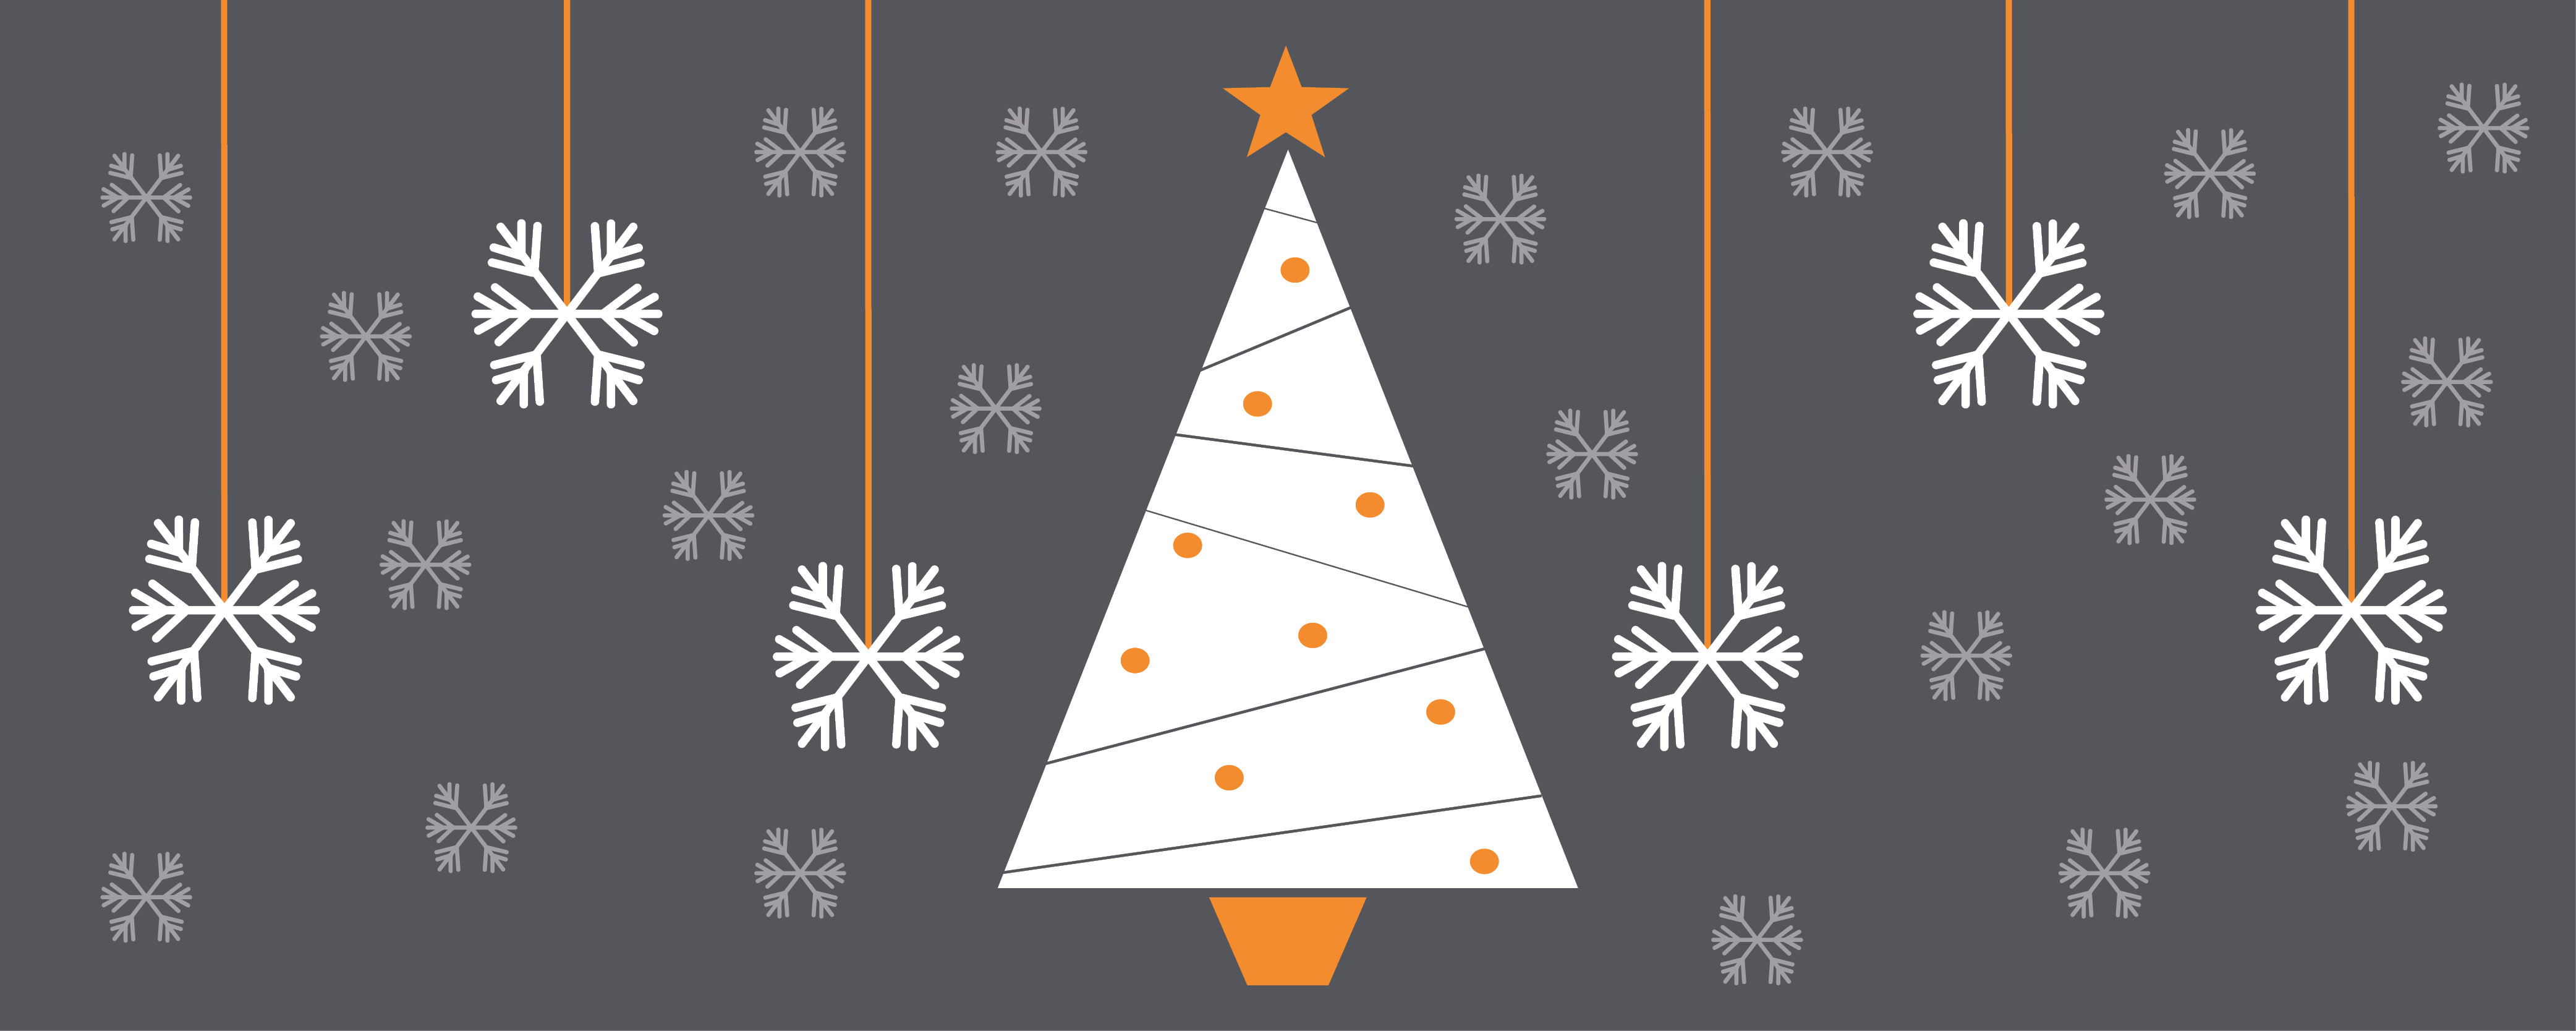 Seasons greetings snowflakes and Christmas tree in C&S branded colours